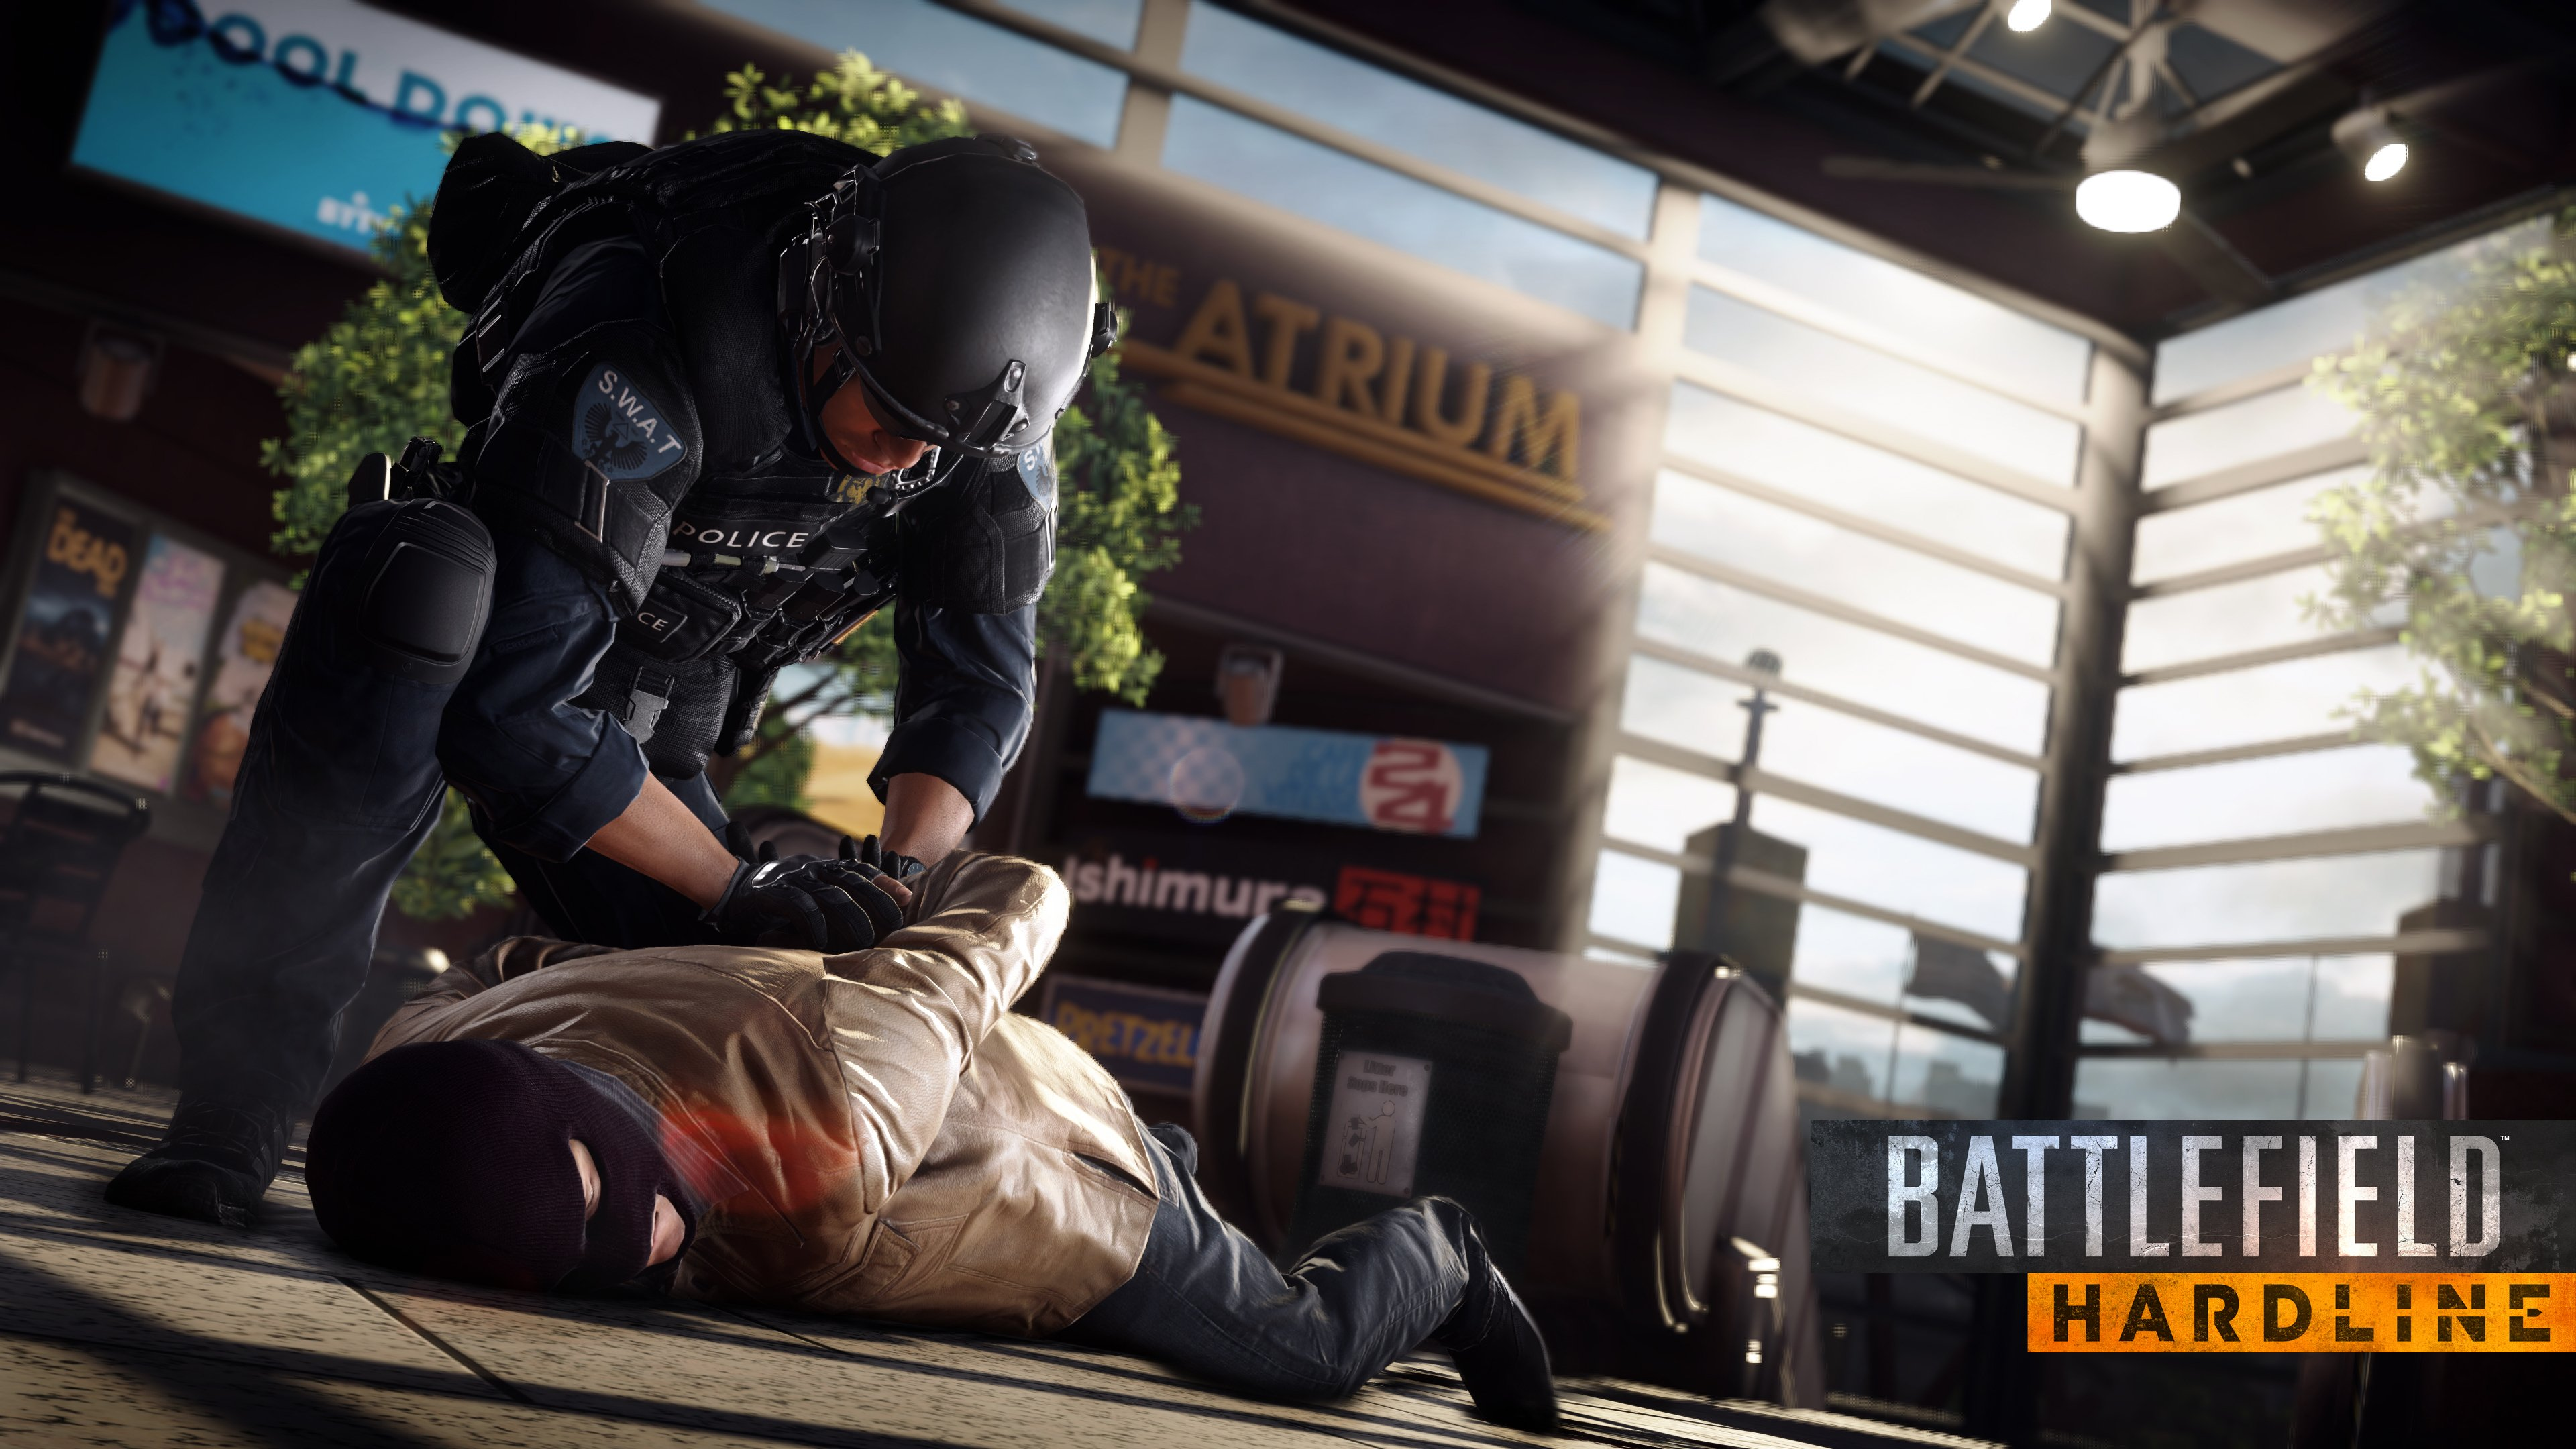 EA-and-Visceral-Games-Battlefield-Hardline-Closed-Multiplayer-Beta-Video-Game-Announced